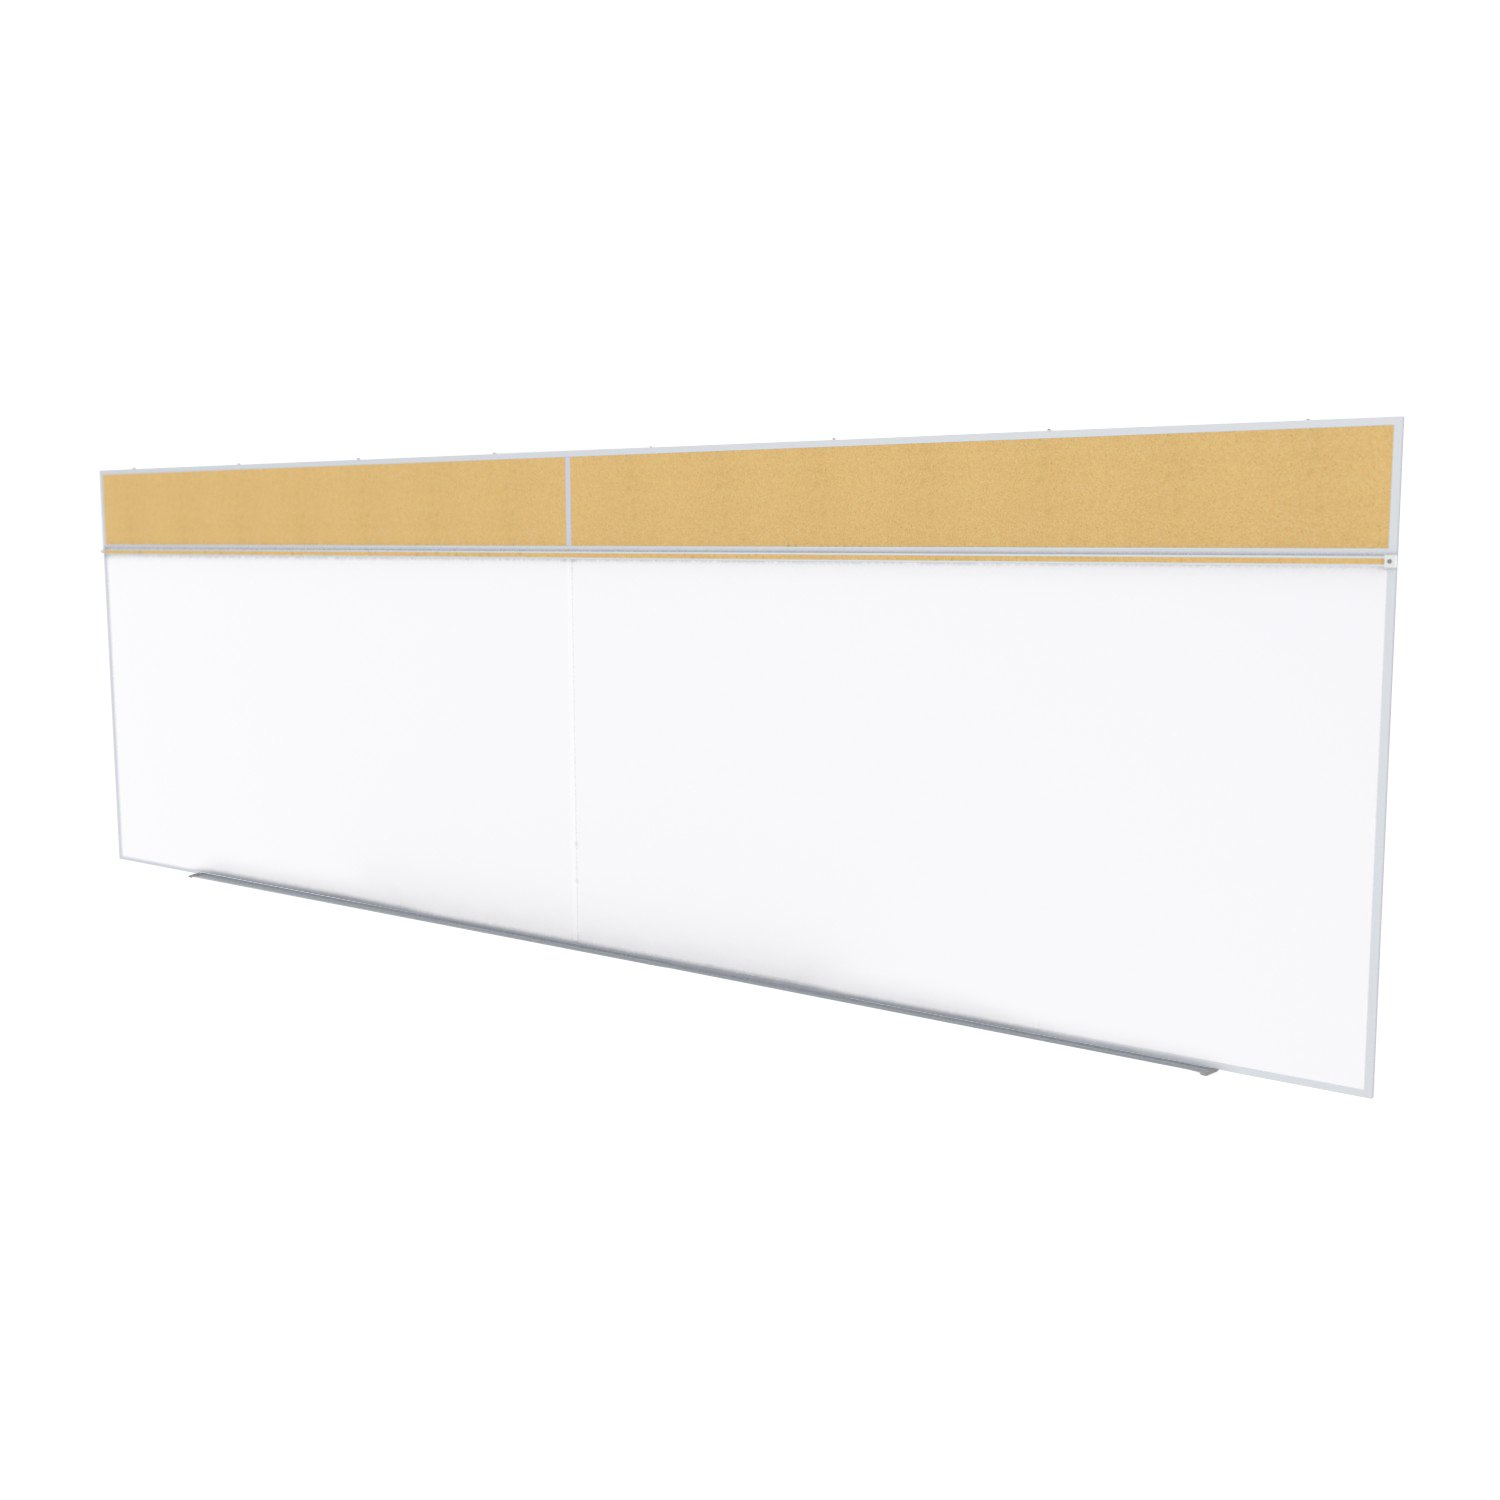 Ghent 5 x 16 Feet Combination Board, Porcelain Magnetic Whiteboard and Natural Cork Bulletin Board , Made in the USA